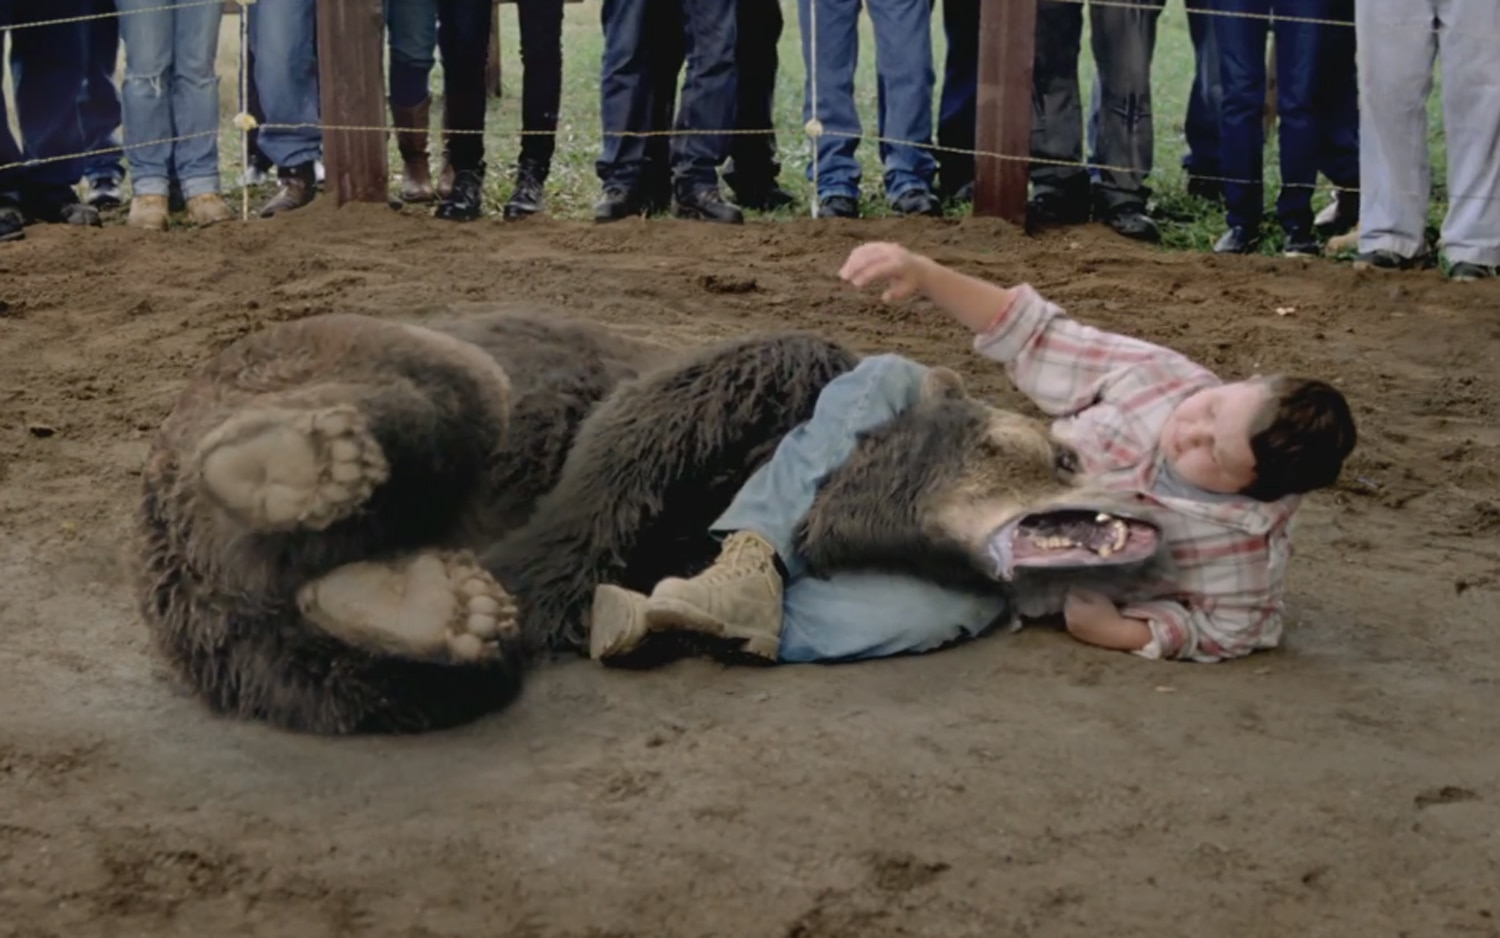 Kid Wrestling Bear In Hyundai Super Bowl Ad